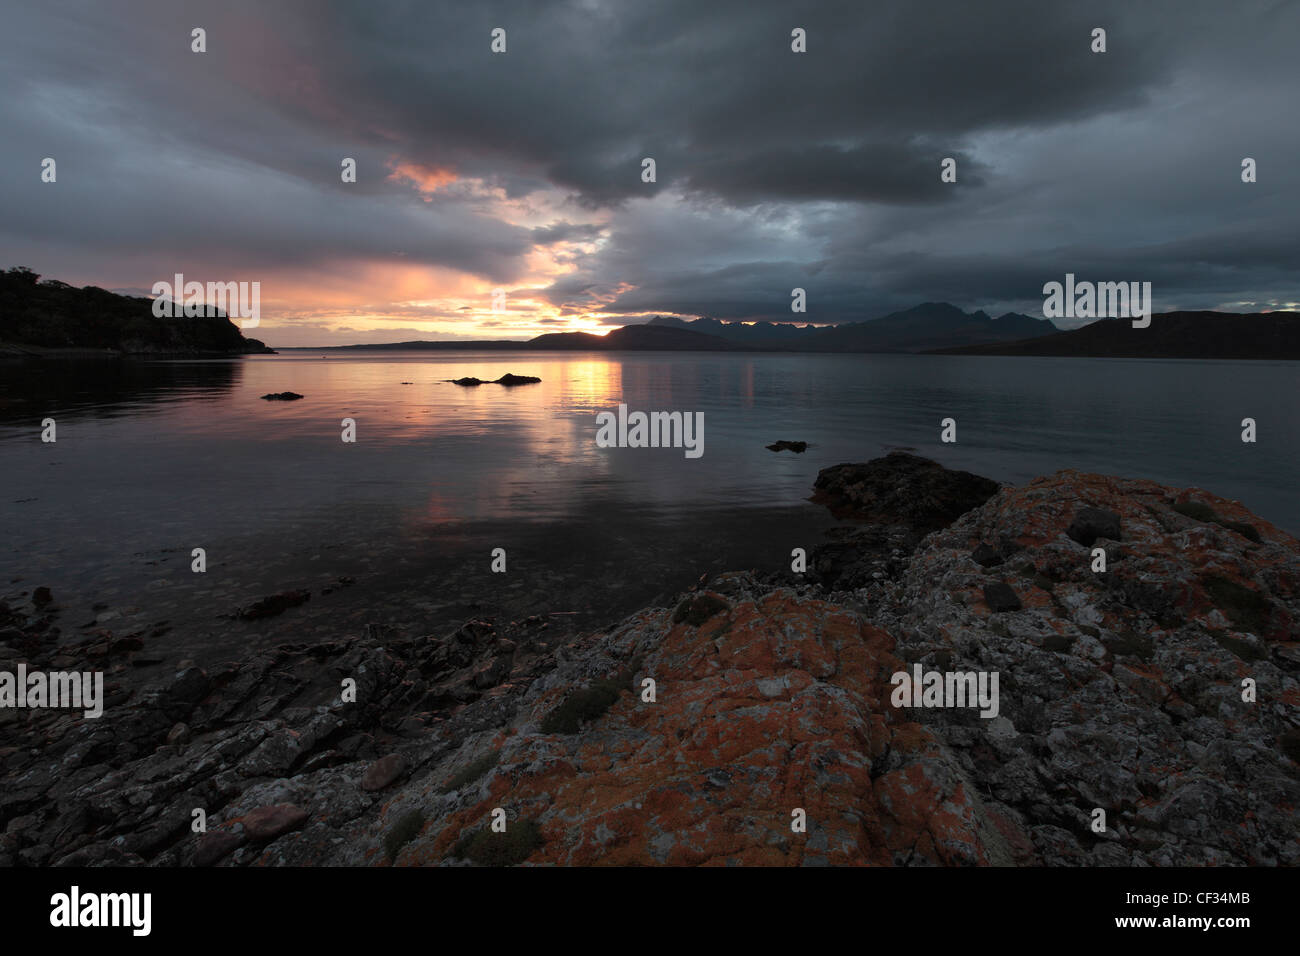 View across Loch Eishort towards the sunsetting behind the Cuillin hills on the Isle of Skye. - Stock Image